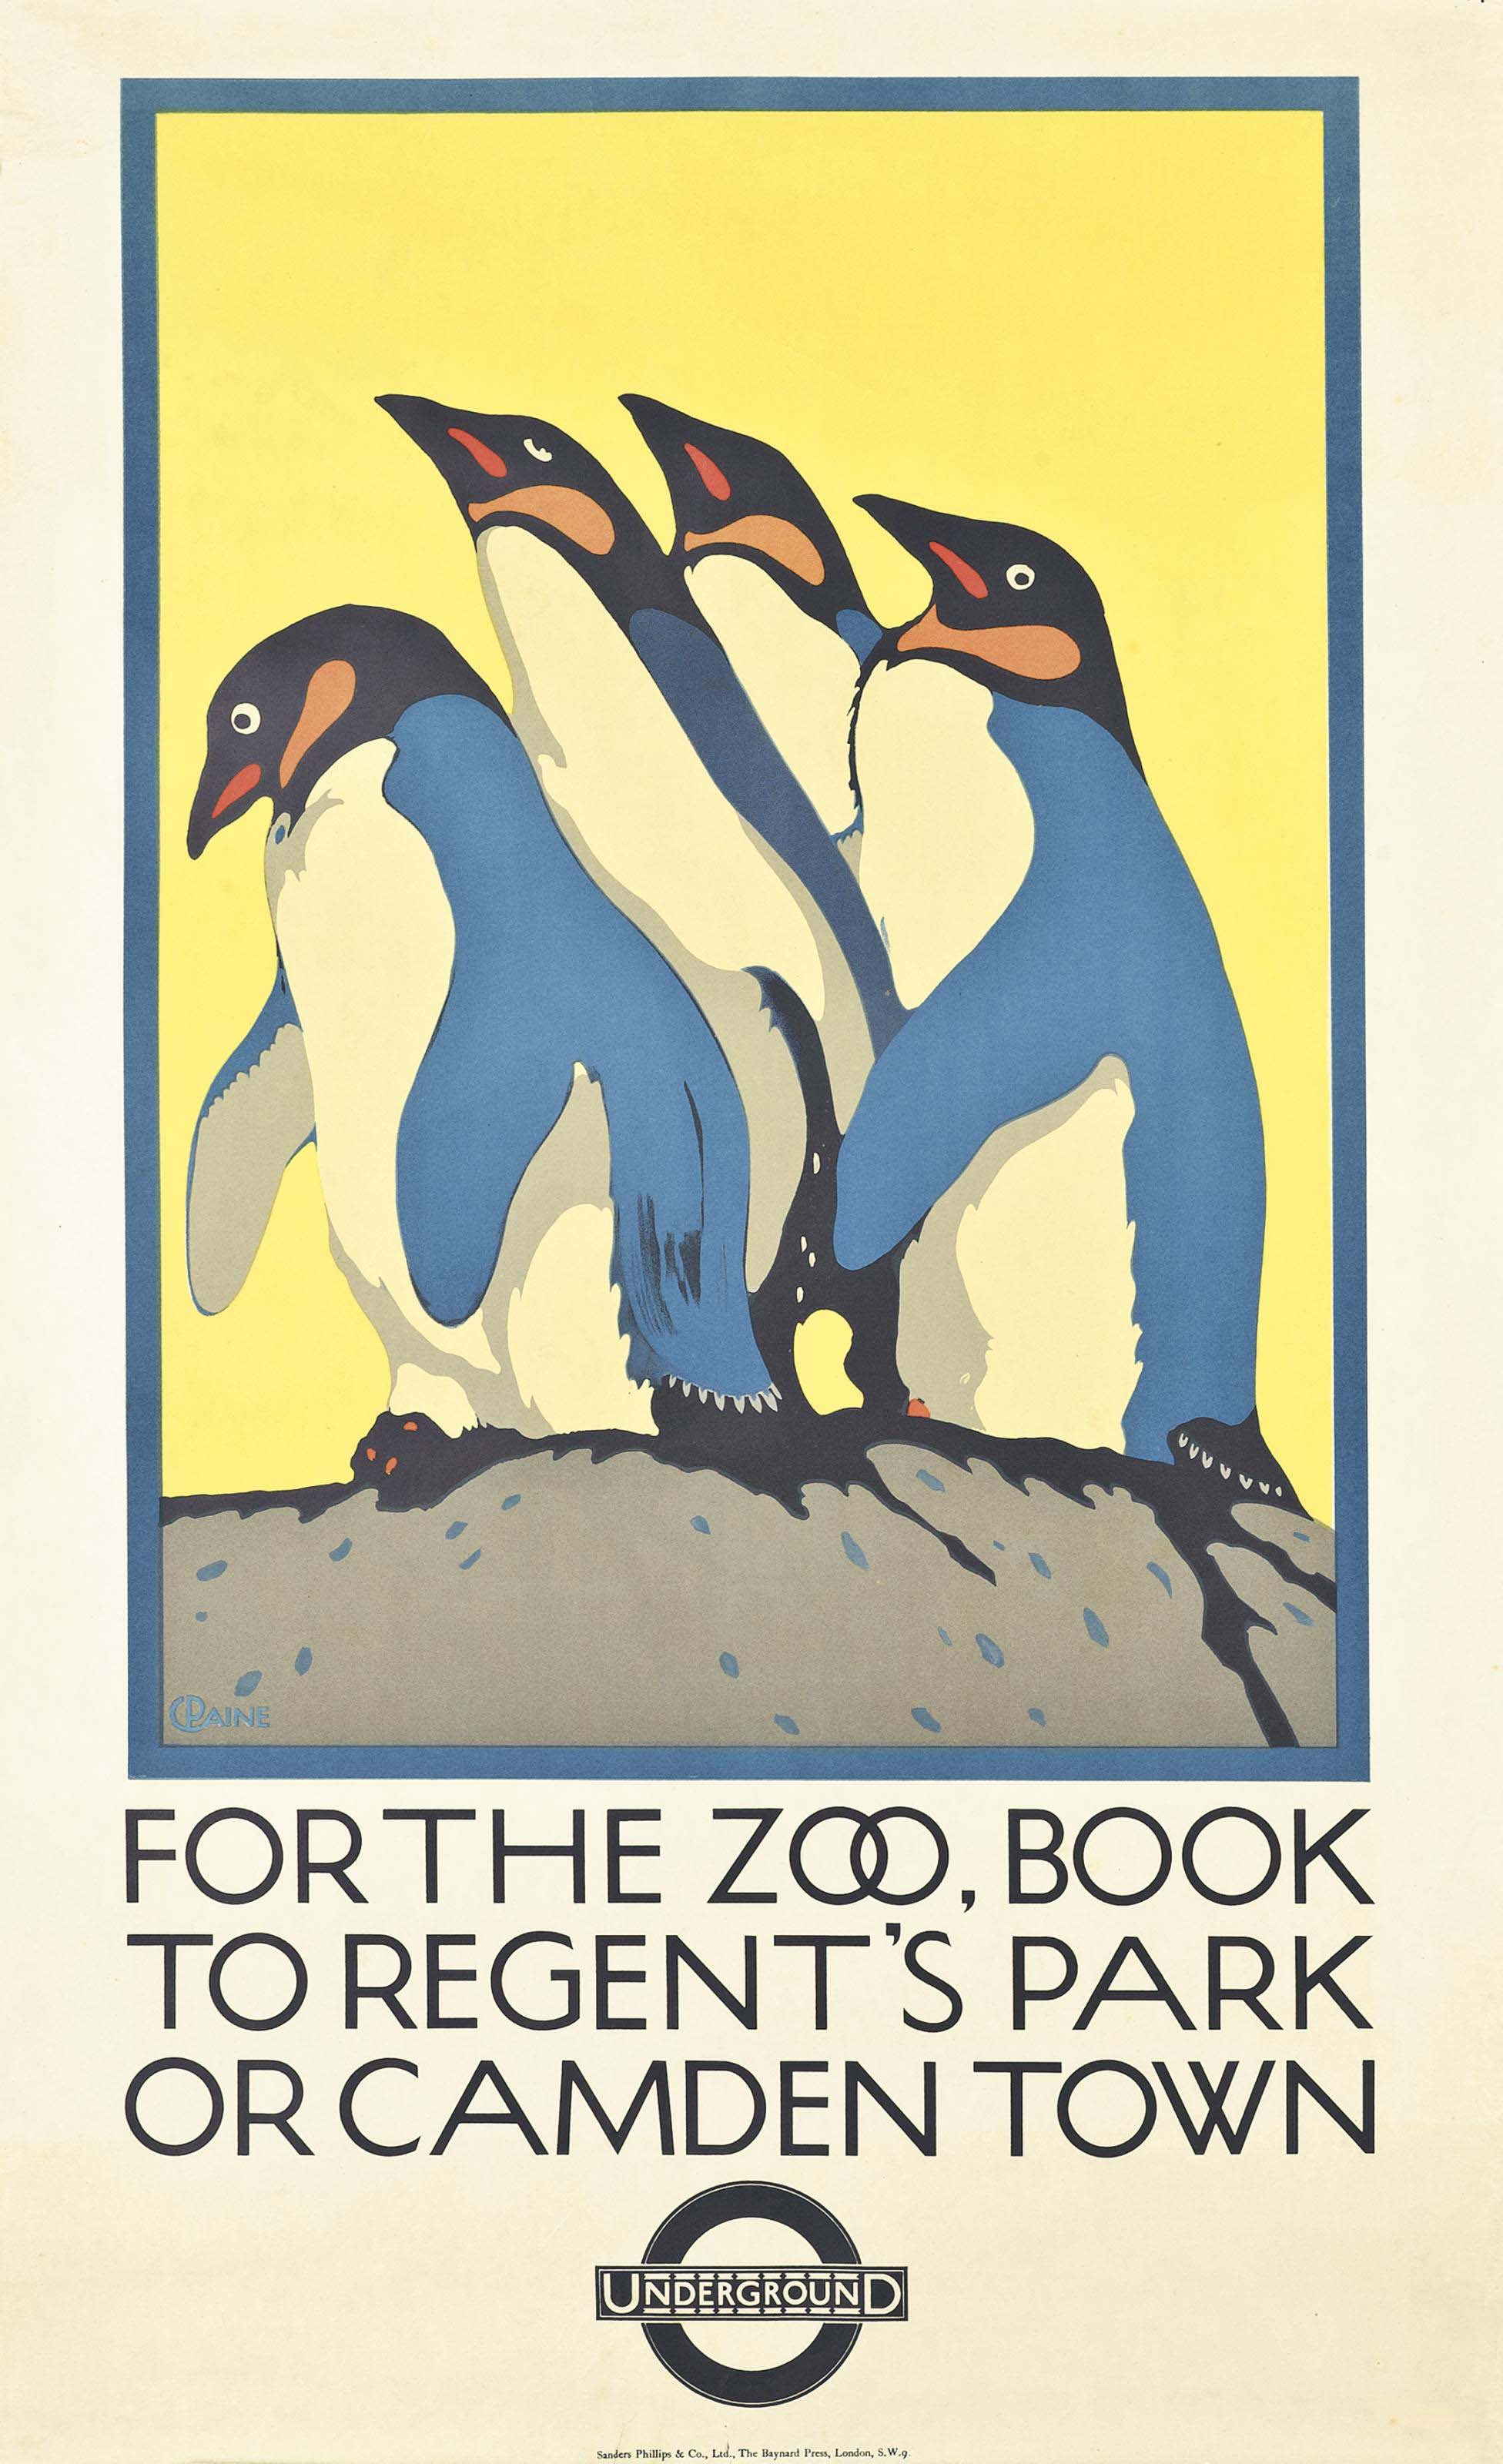 FOR THE ZOO, BOOK TO REGENT'S PARK